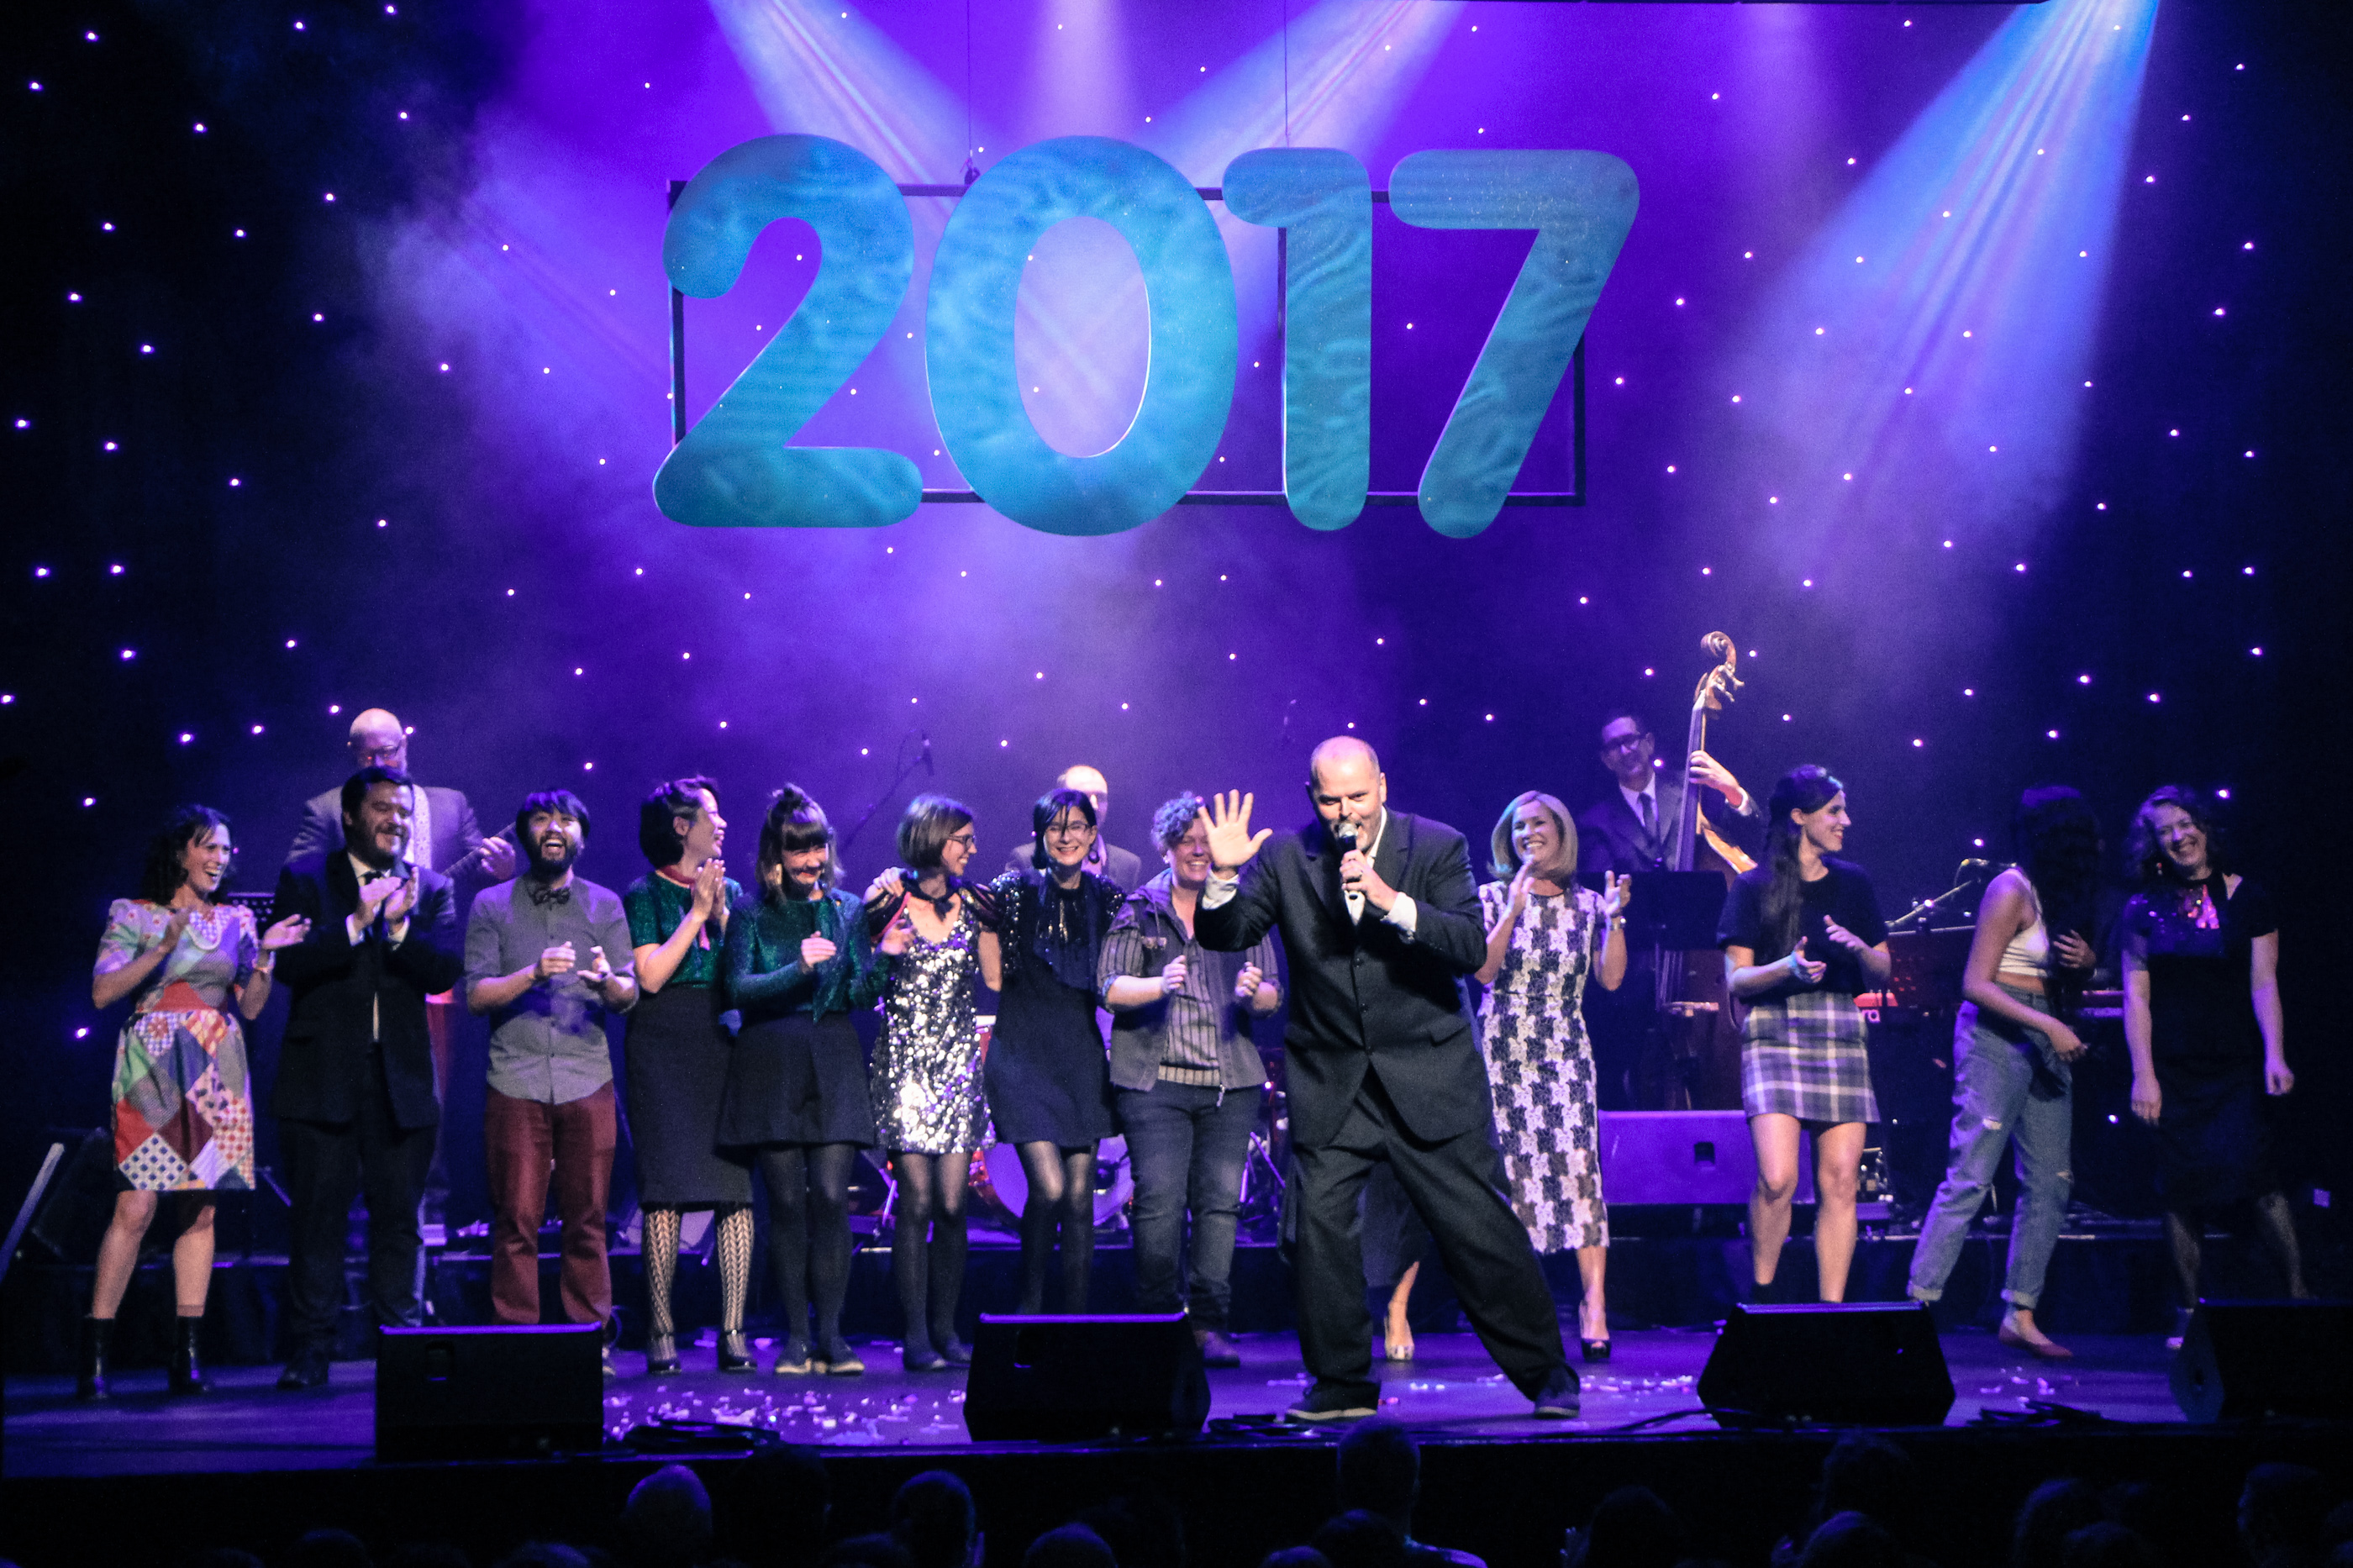 The cast of the 2017 Show of the Year